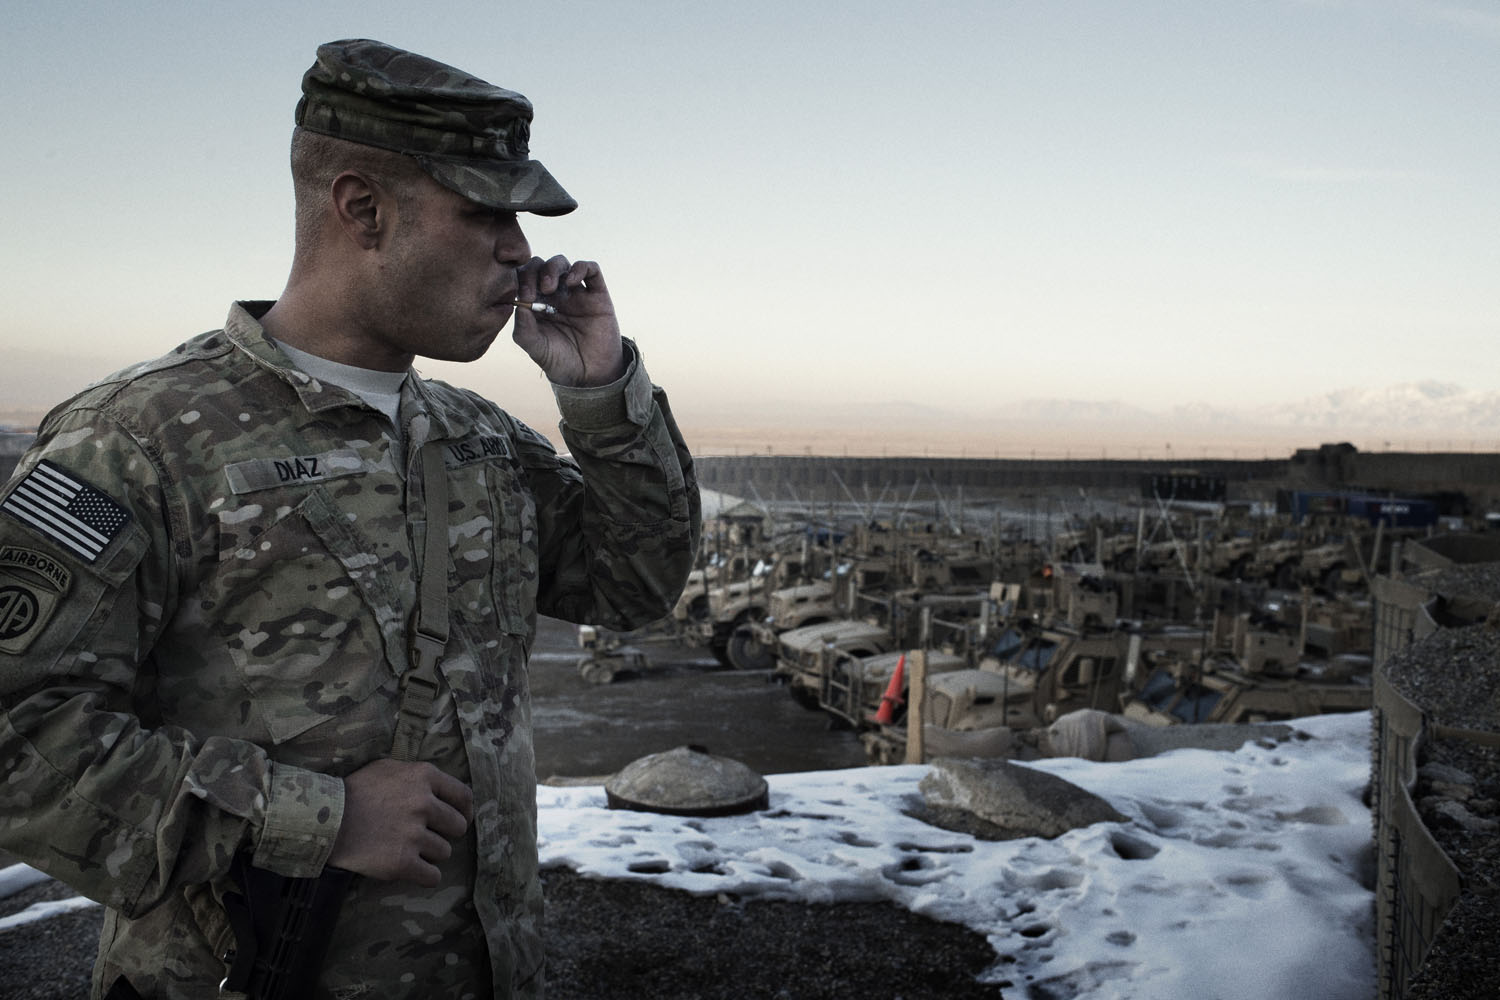 Sgt. Mario Diaz, 32, a communications specialist from Ridgeland, Miss.,  at Forward Operating Base Altimur, Logar Province, Afghanistan. Sgt. Diaz, who recently completed his third tour in Afghanistan, previously served at Altimur in 2009.